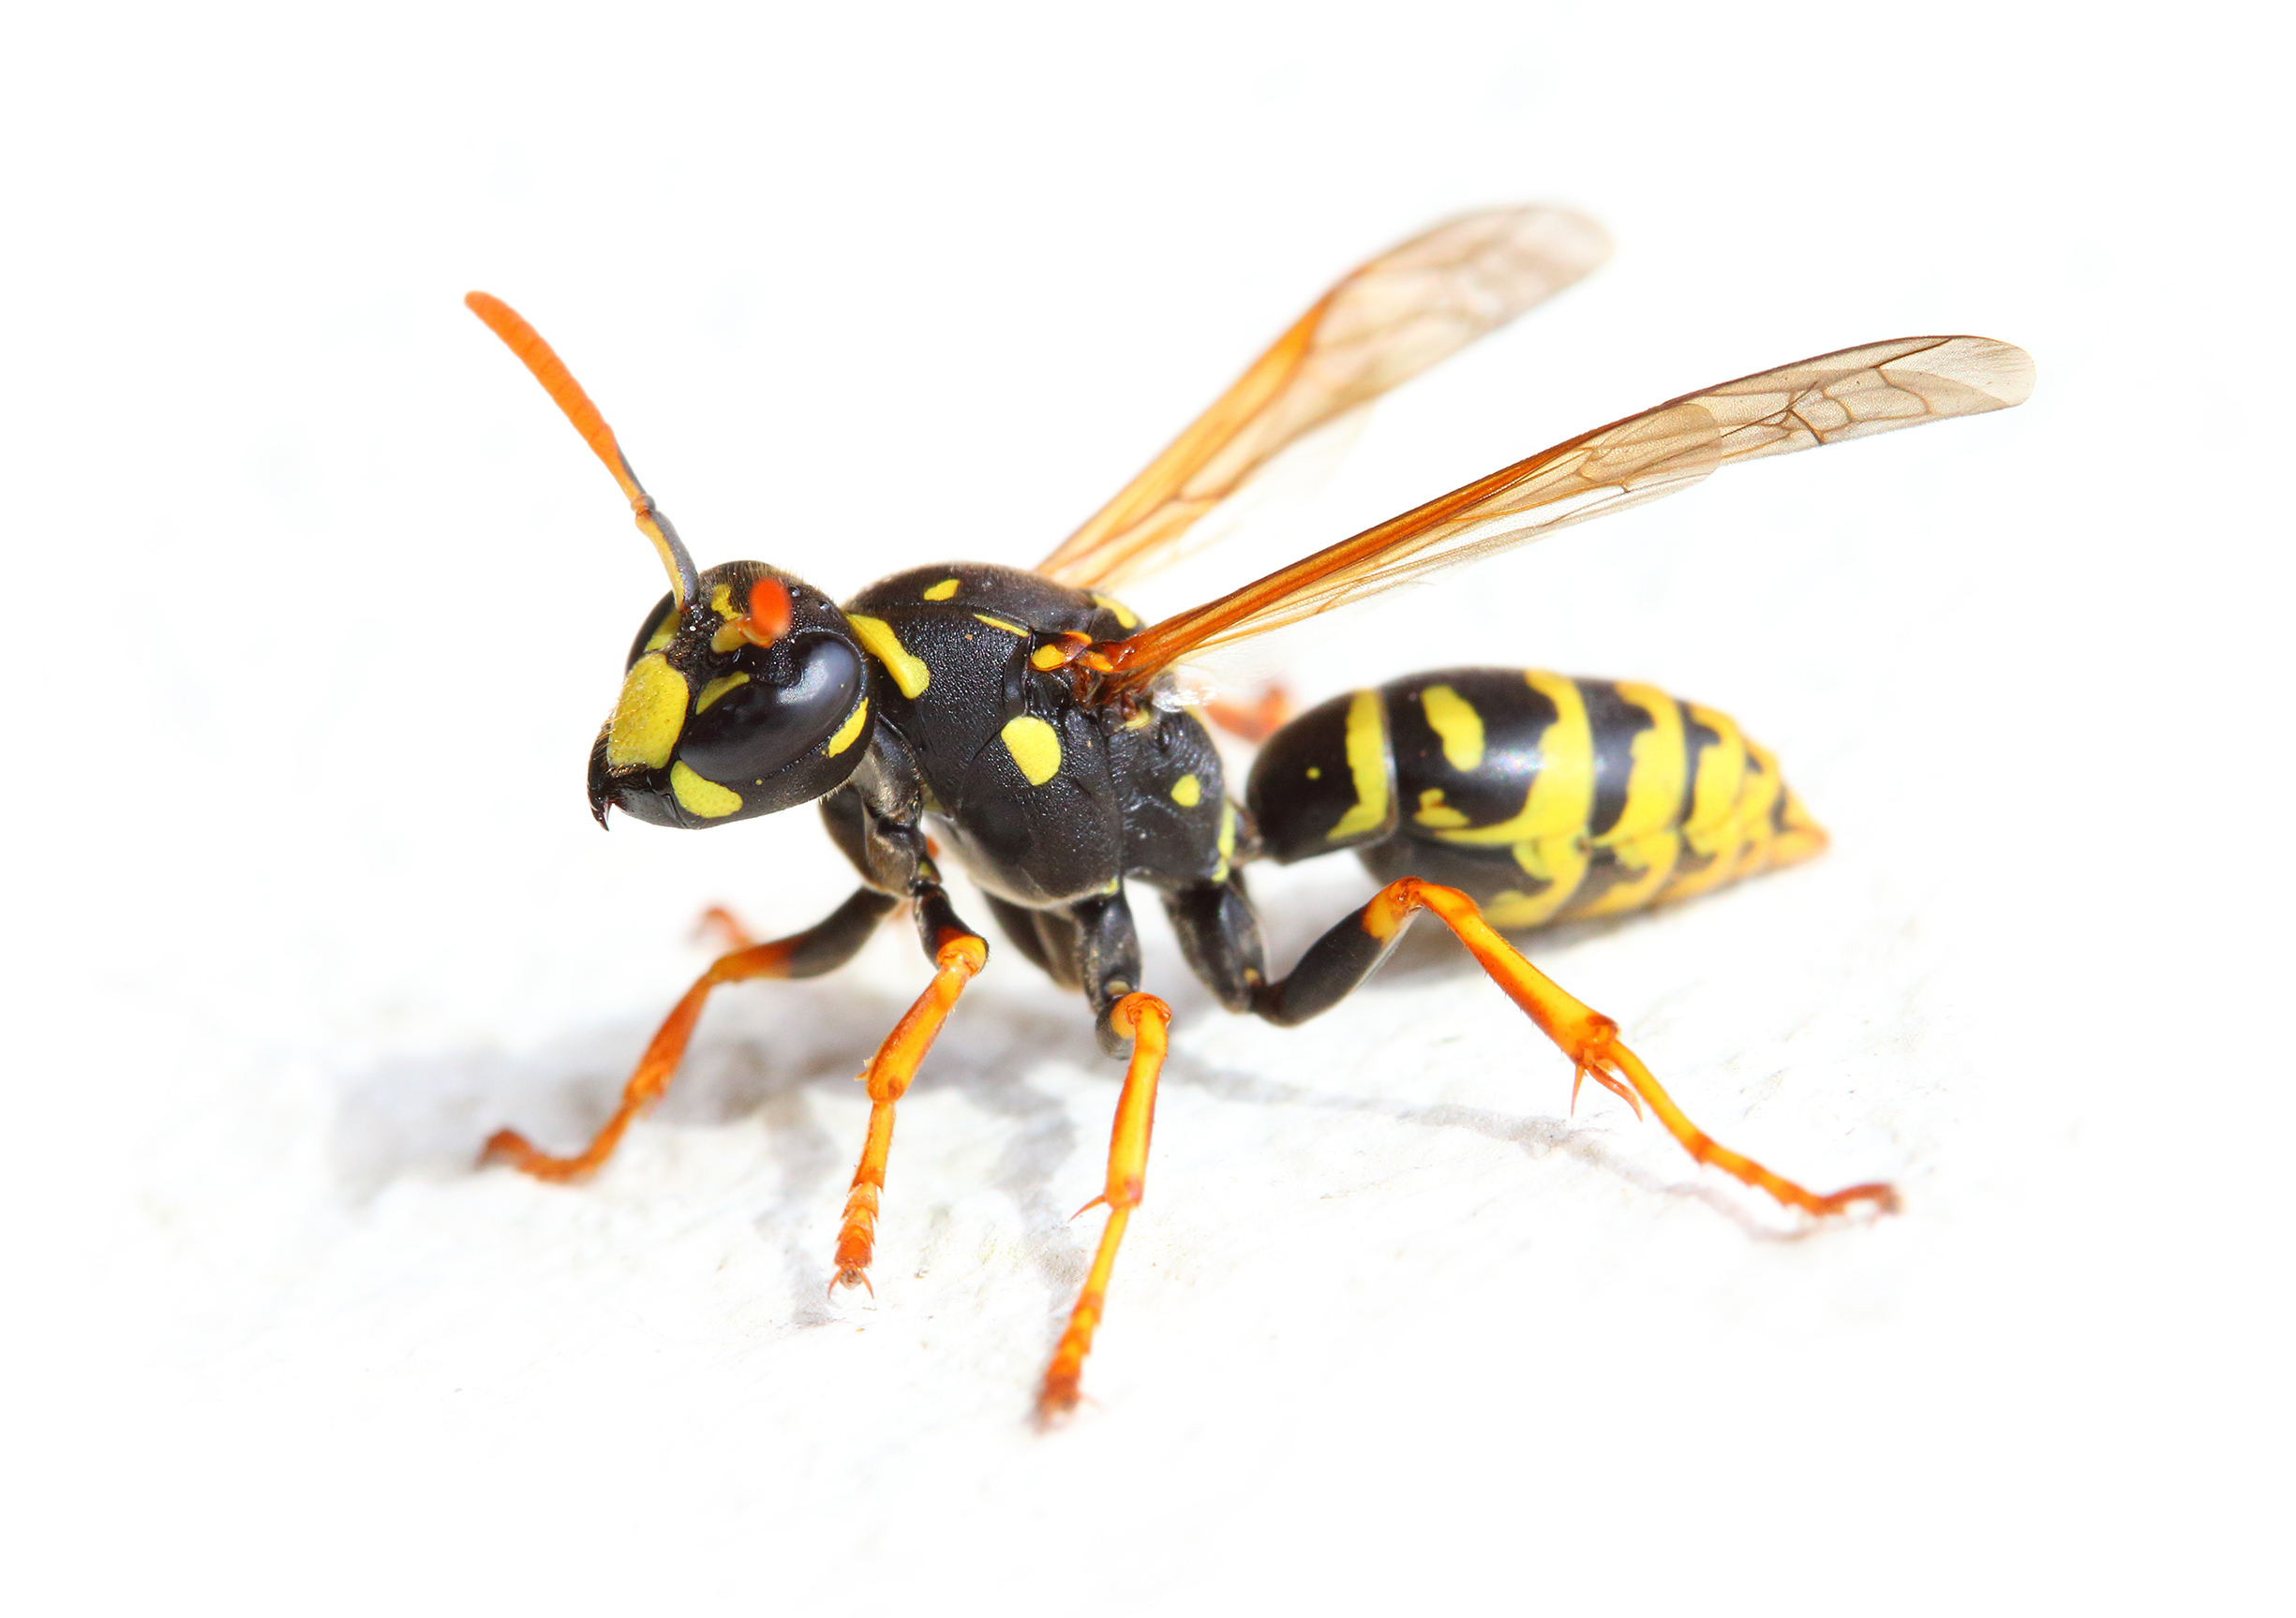 10 FAQs About Wasps - deBugged